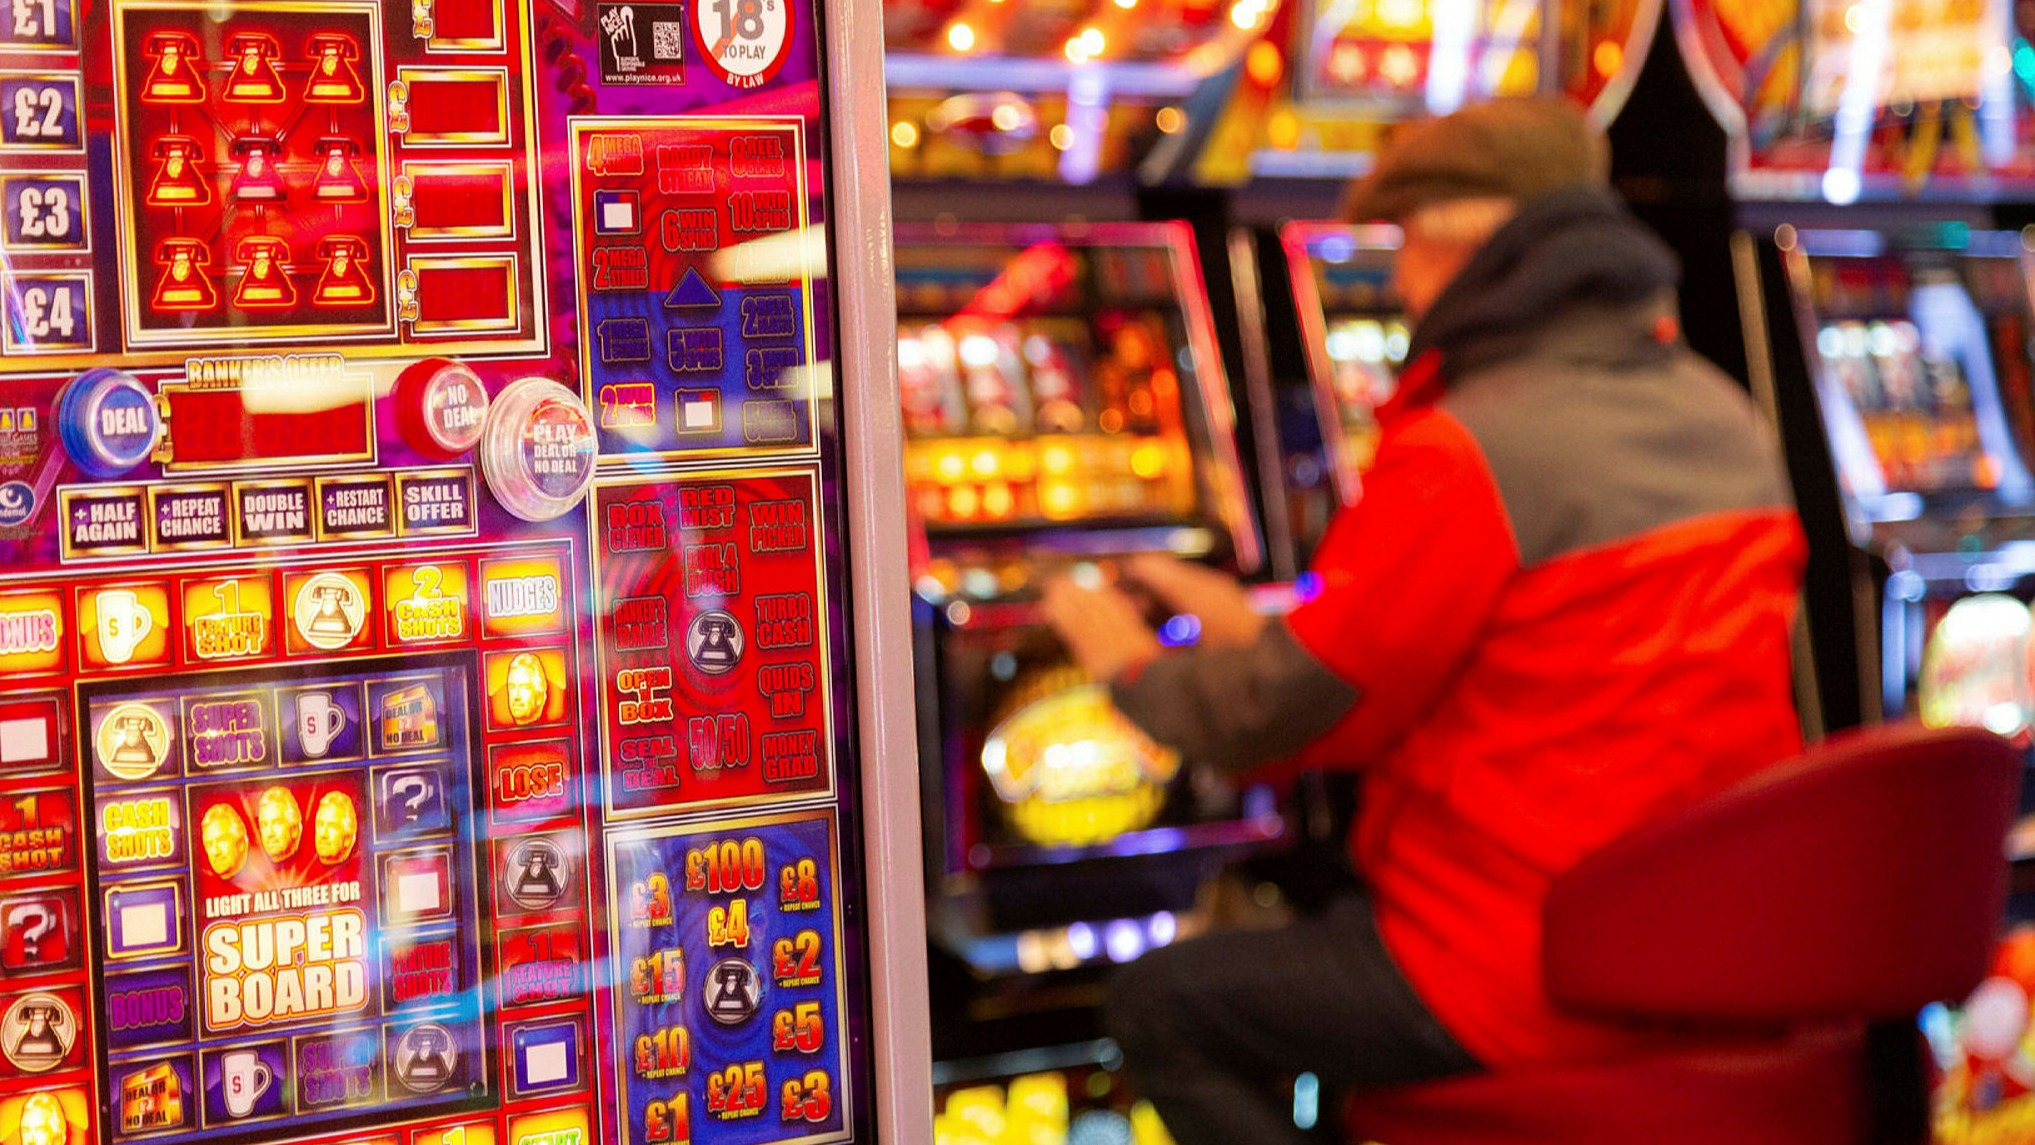 Tougher gambling laws would boost UK economy, says think-tank | Financial  Times